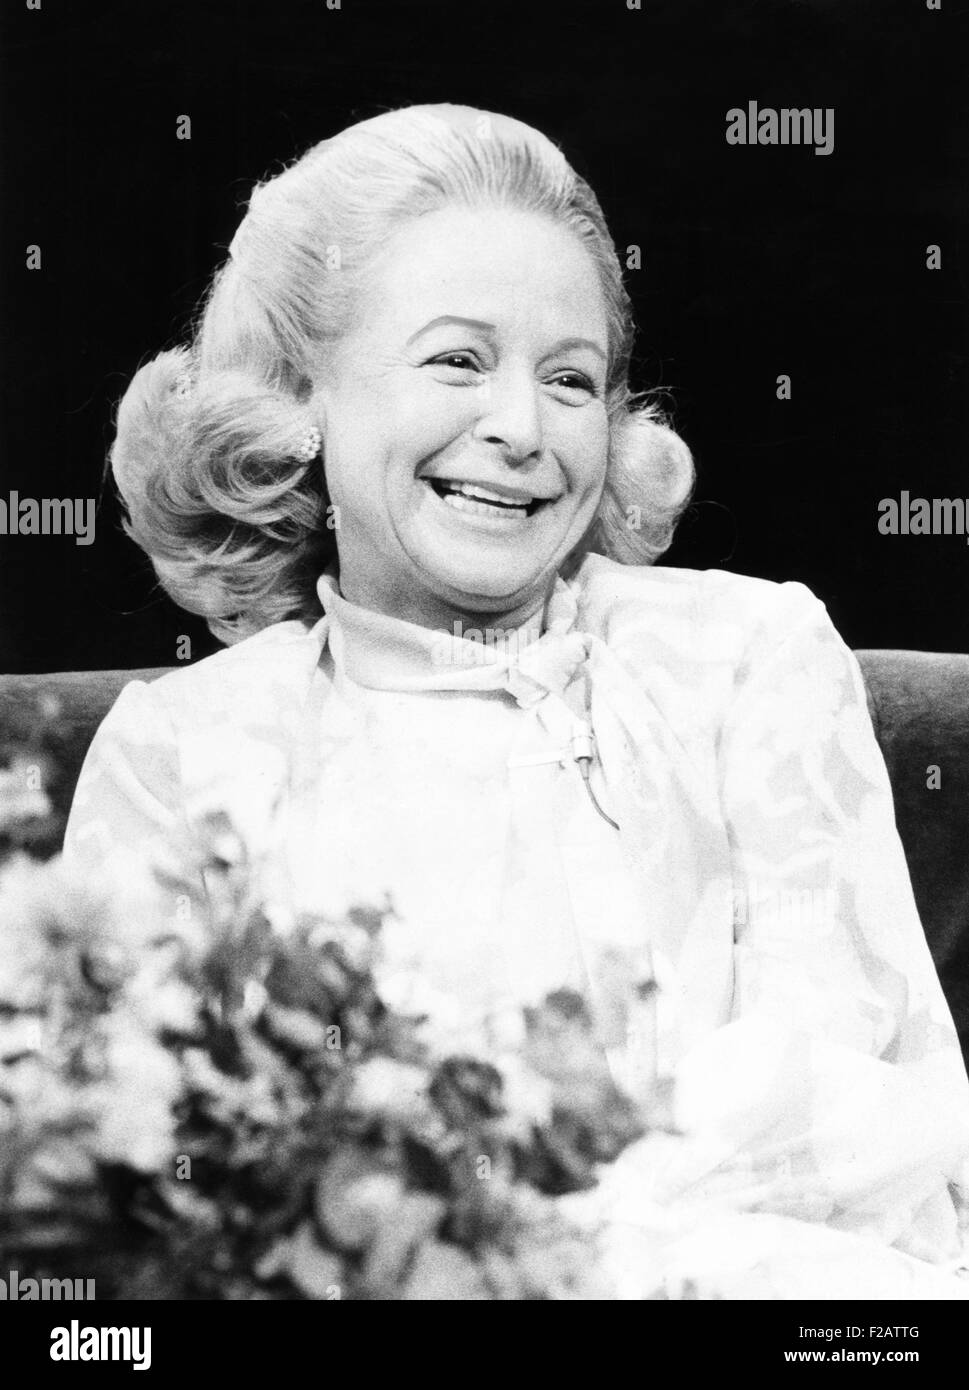 Martha Mitchell as she appeared on Tom Snyder's NBC TV's TOMORROW show. May 1, 1974. Always quotably indiscreet, - Stock Image